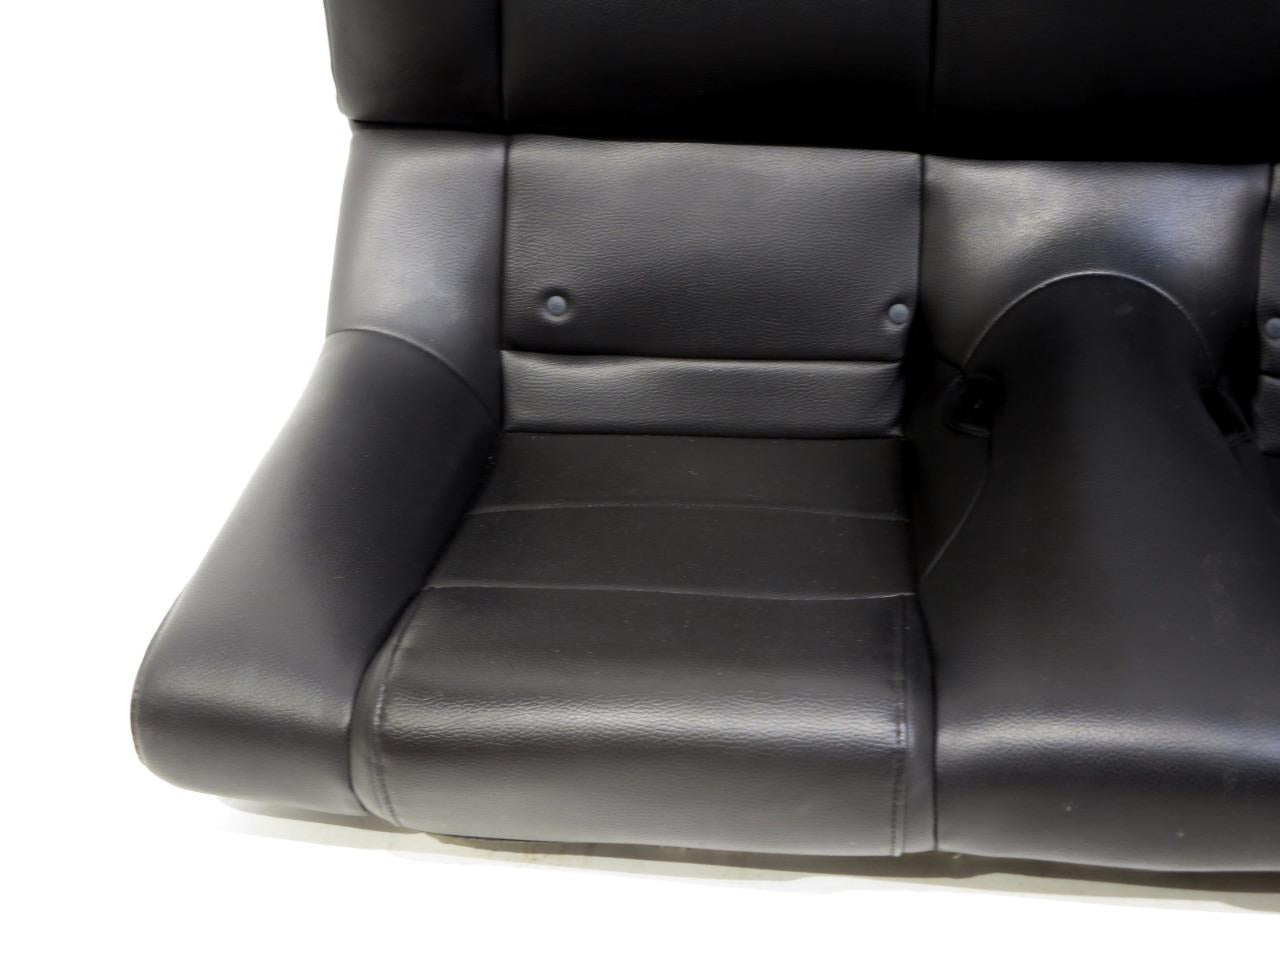 mustang ford gt seat convertible 2006 leather 2008 2005 oem 2007 rear 2009 replacement